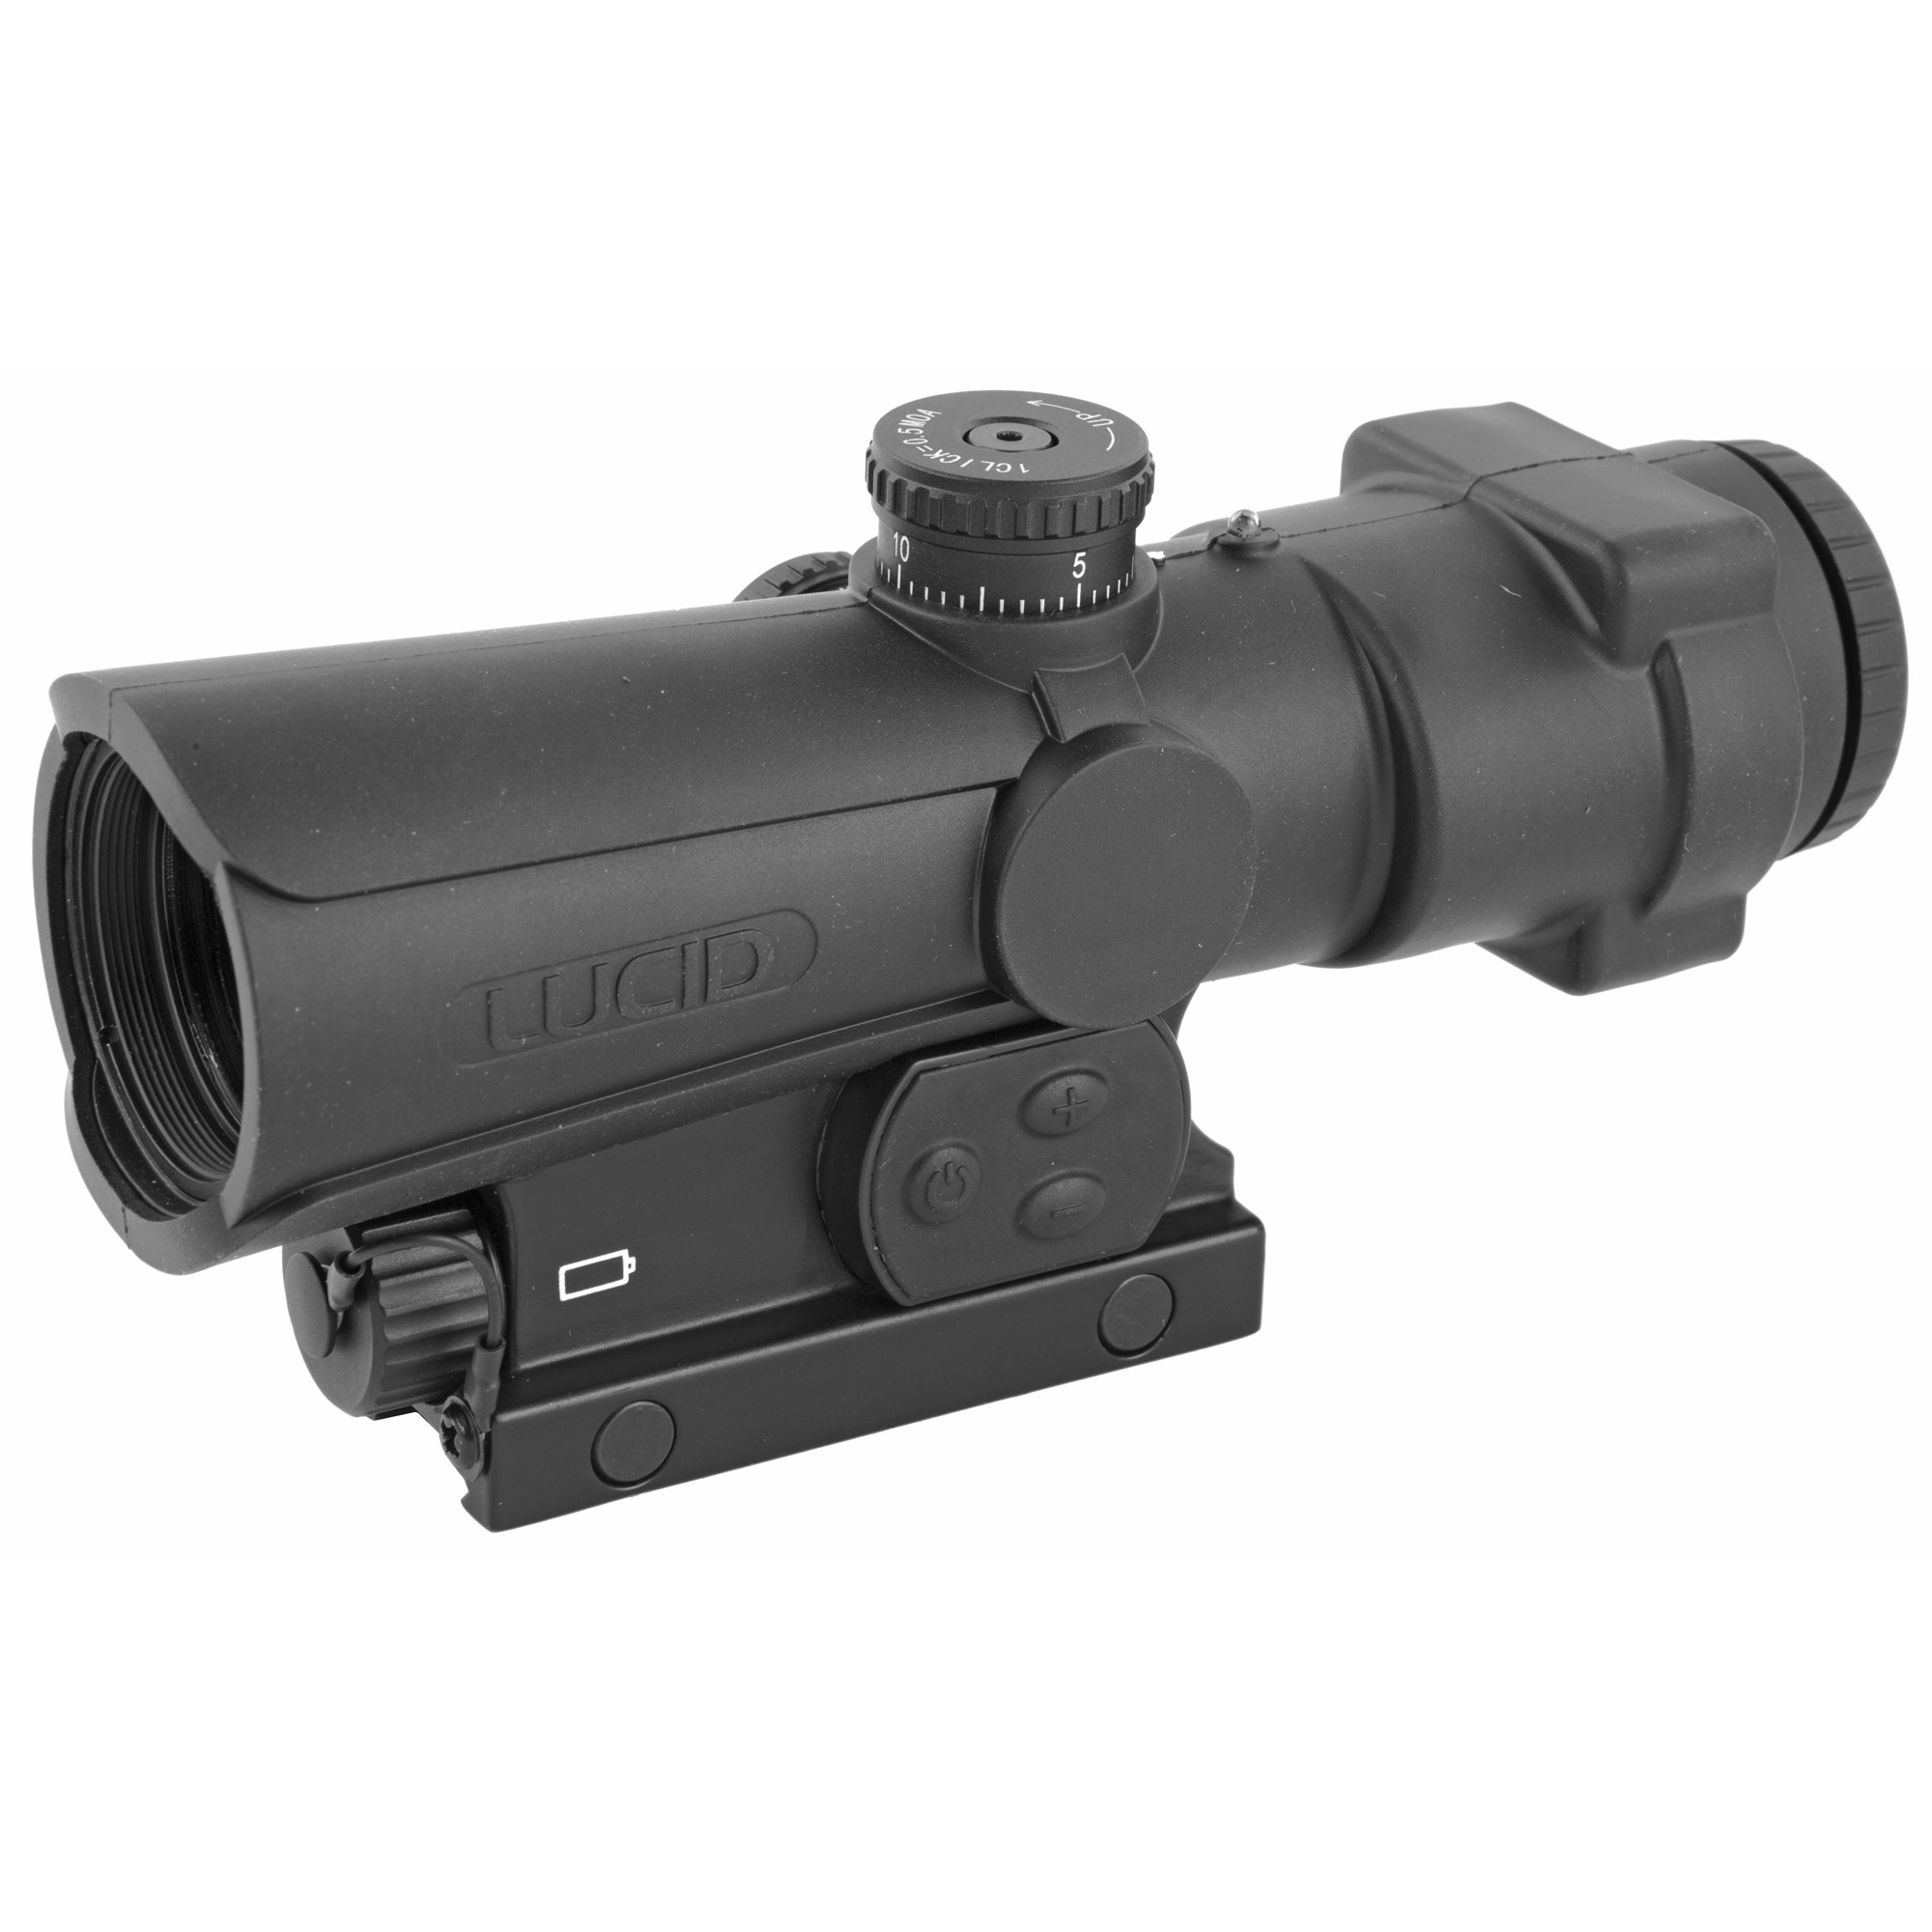 "The P7 offers fast targeting with a highly useful ballistic MOA measuring tape in the (P7) reticle. This reticle is specifically designed to offer the fast target acquisition necessary in a combat optic"" along with highly useful MOA measuring tape"" ballistic hold over information up to 80 MOA in elevation. This reticle will allow for the operator to manage any target with relative ease"" near or far. As expected"" the P7 has been designed from the ground up to be a strong"" reliable optic that offers the most in operator selectable features and benefits that exceed the market standards at a price that is very affordable."